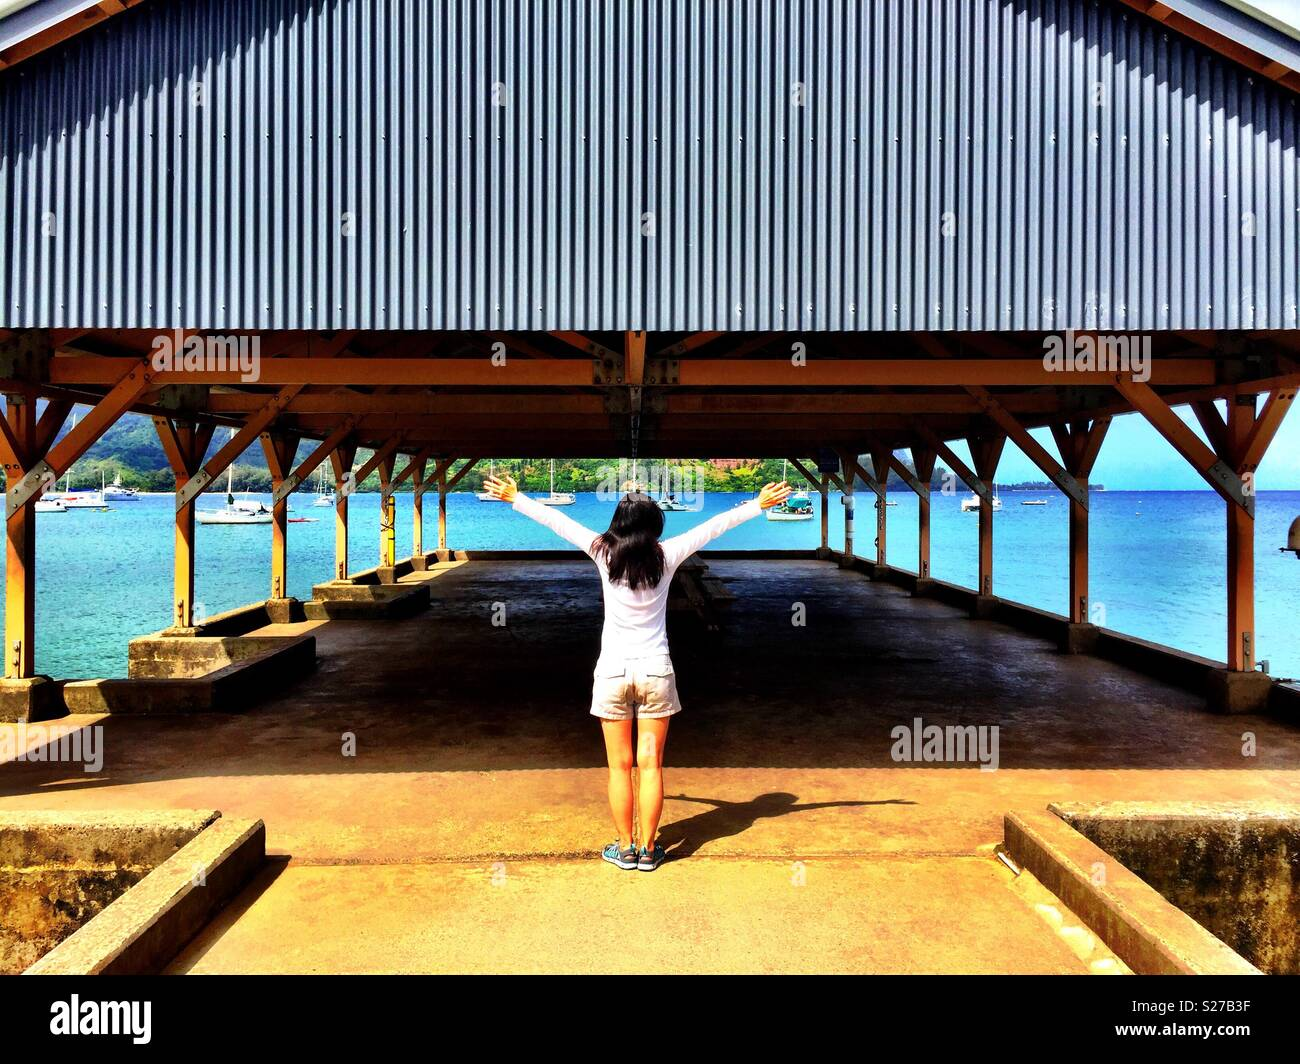 Young woman, long brunette hair and shorts, arms outstretched in yoga pose at the end of Hanalei Bay pier in Northshore Kauai - Stock Image